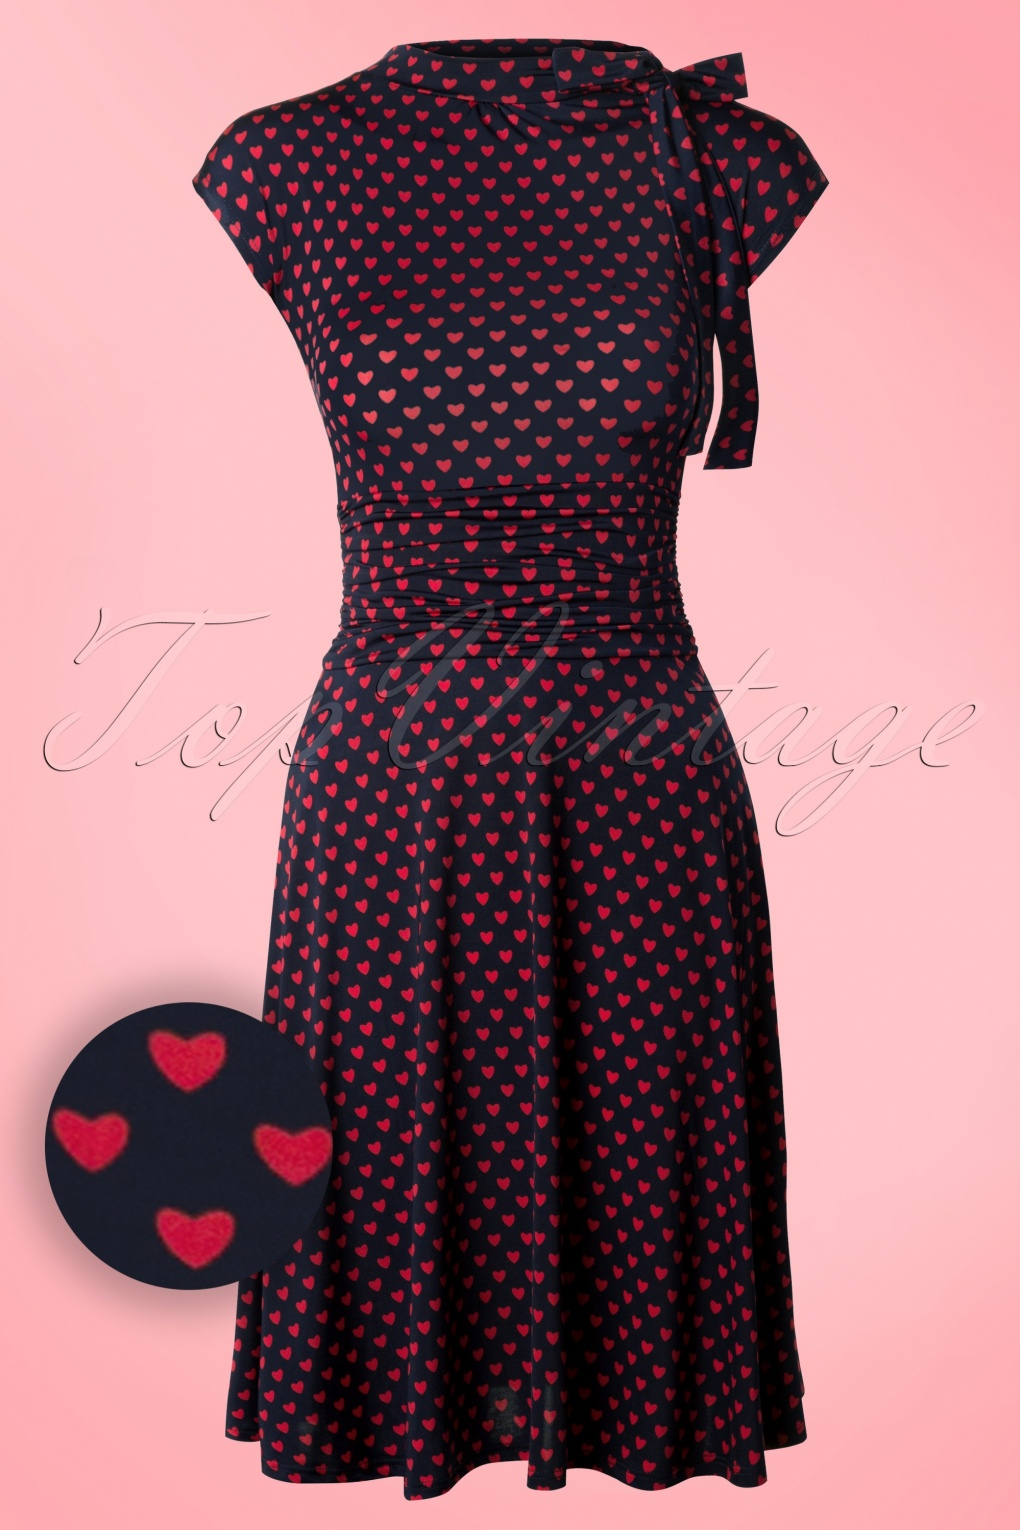 Bridget Heart Bombshell Dress Navy and Red